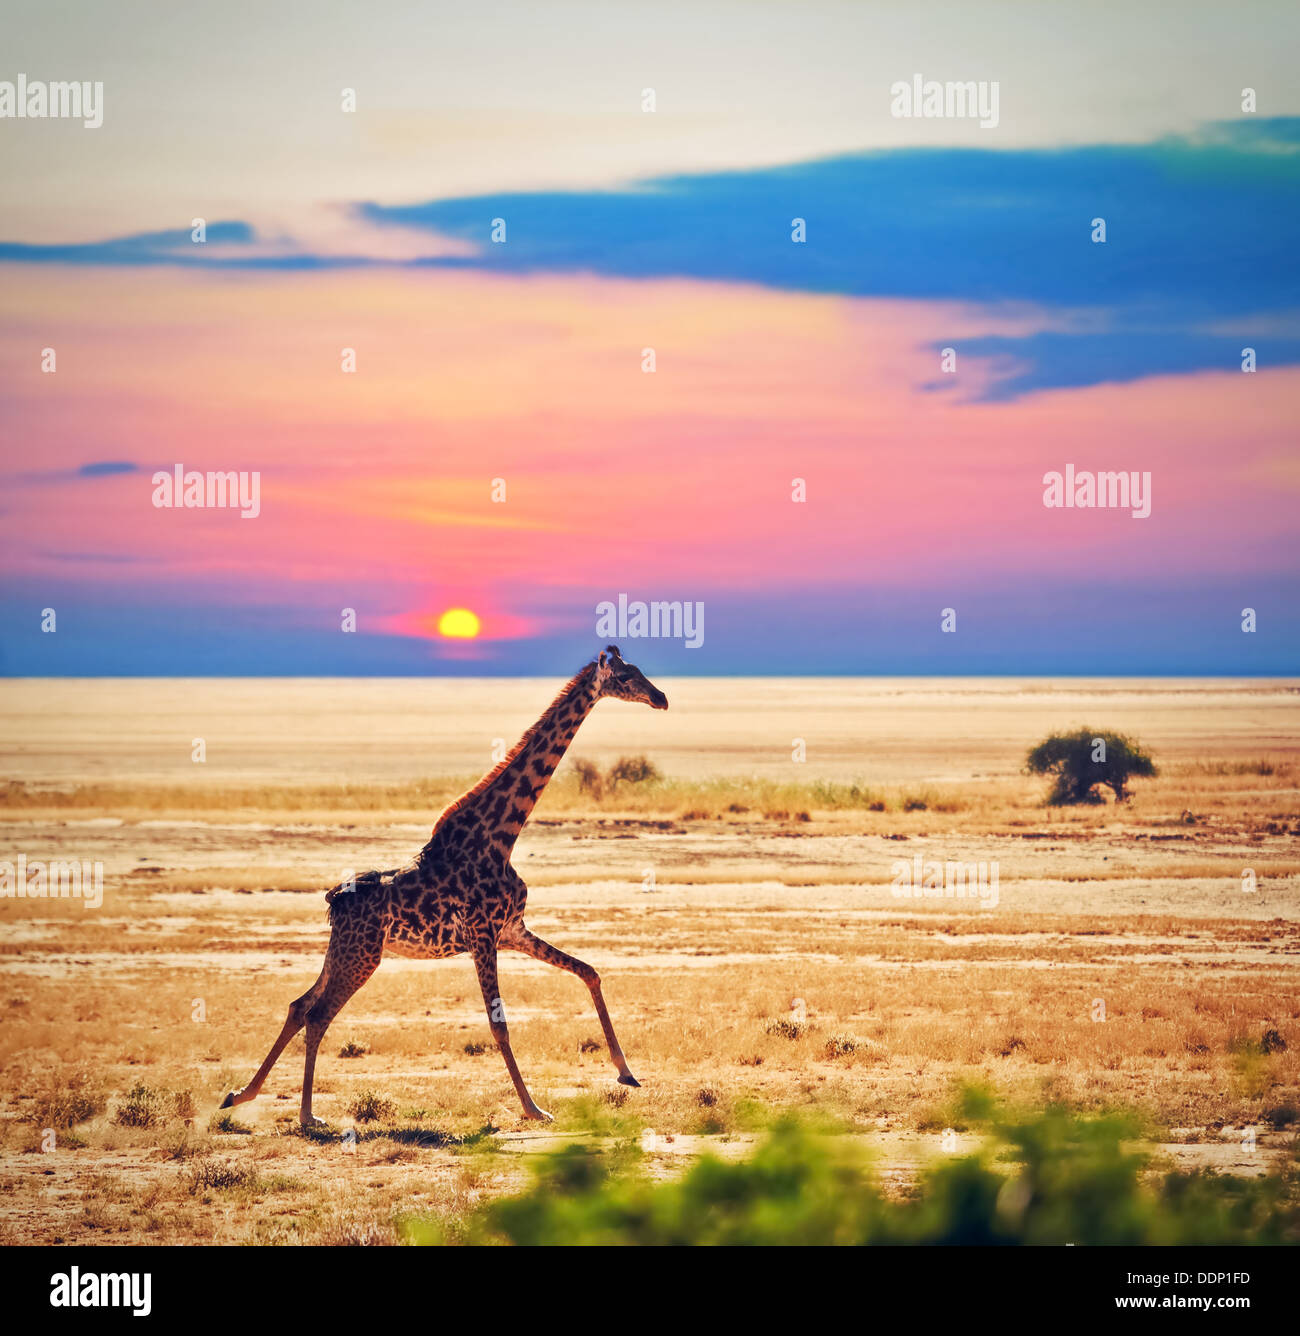 Faune - Girafe fonctionnant sur la savane au coucher du soleil. Safari dans le Parc national Amboseli, Kenya, Africa Photo Stock